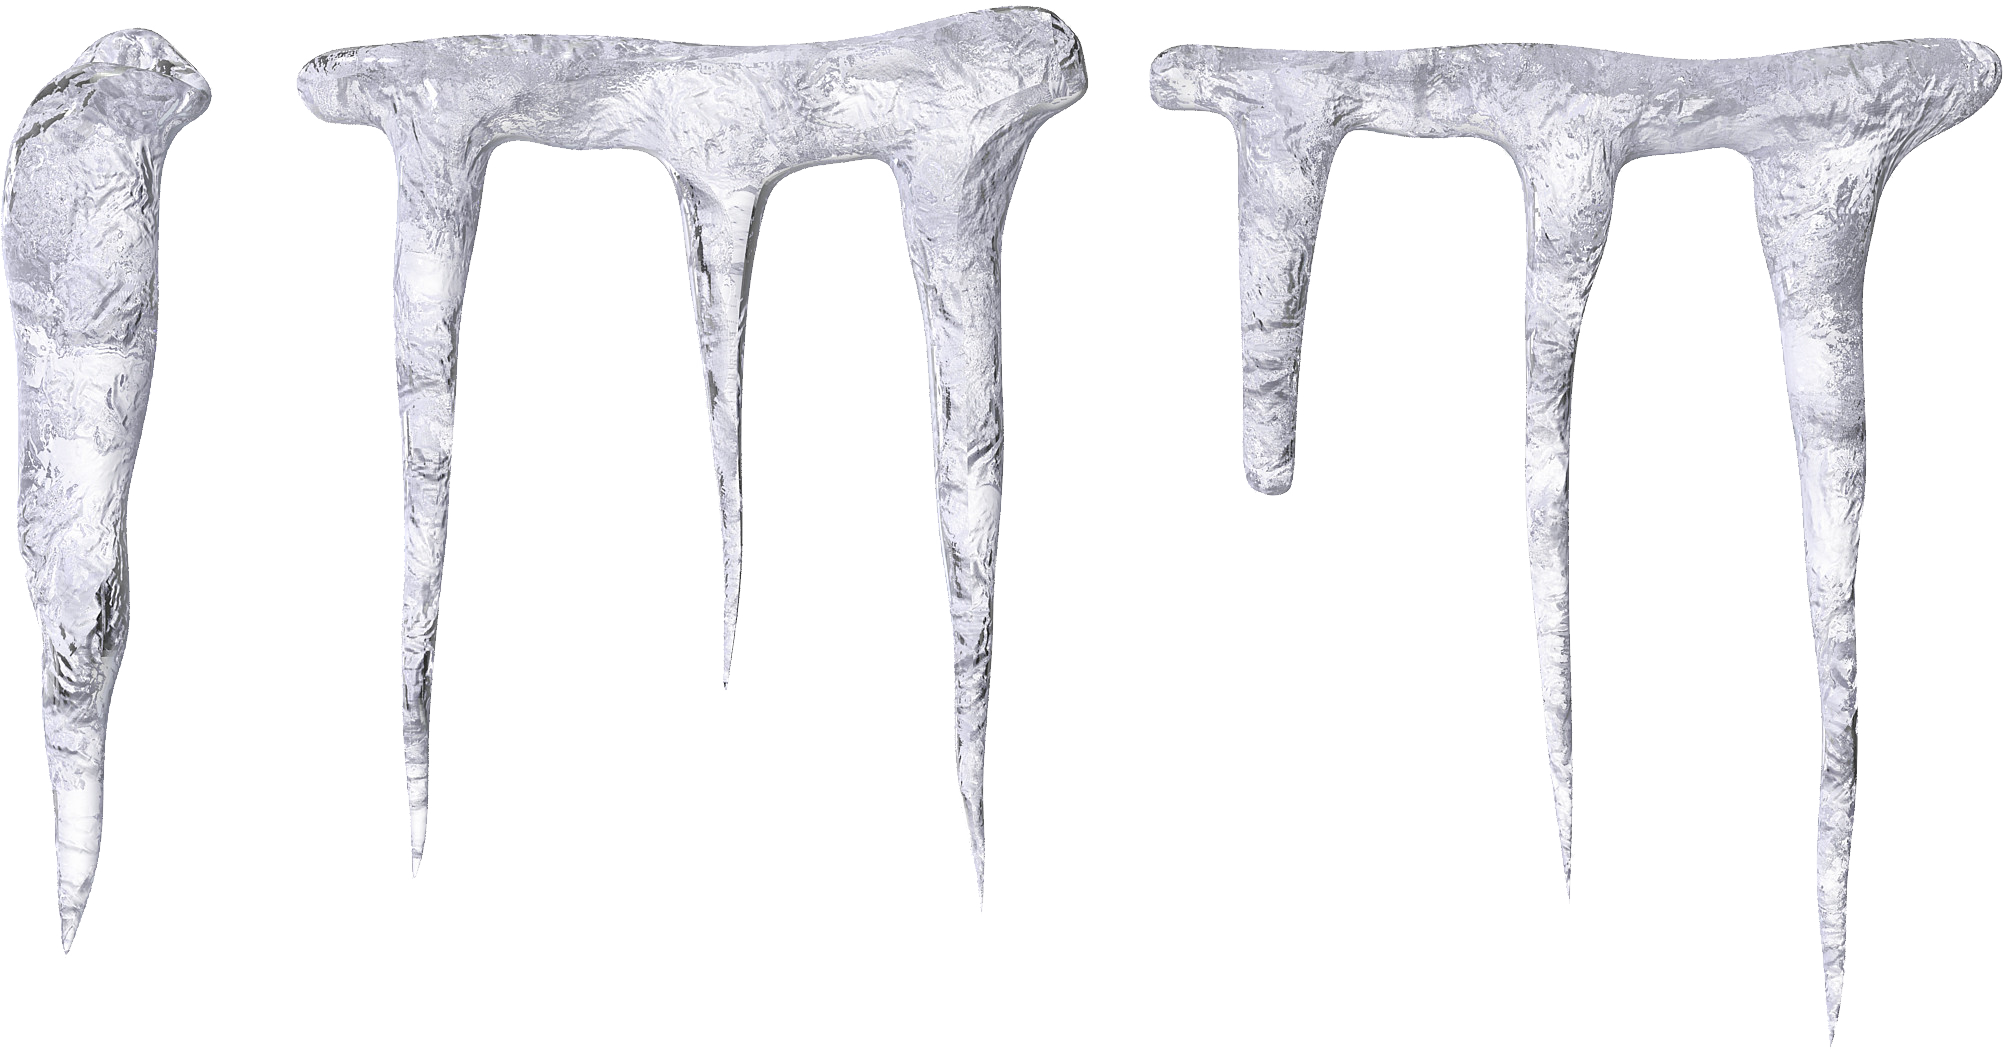 Png free images download. Icicles transparent one clip black and white download